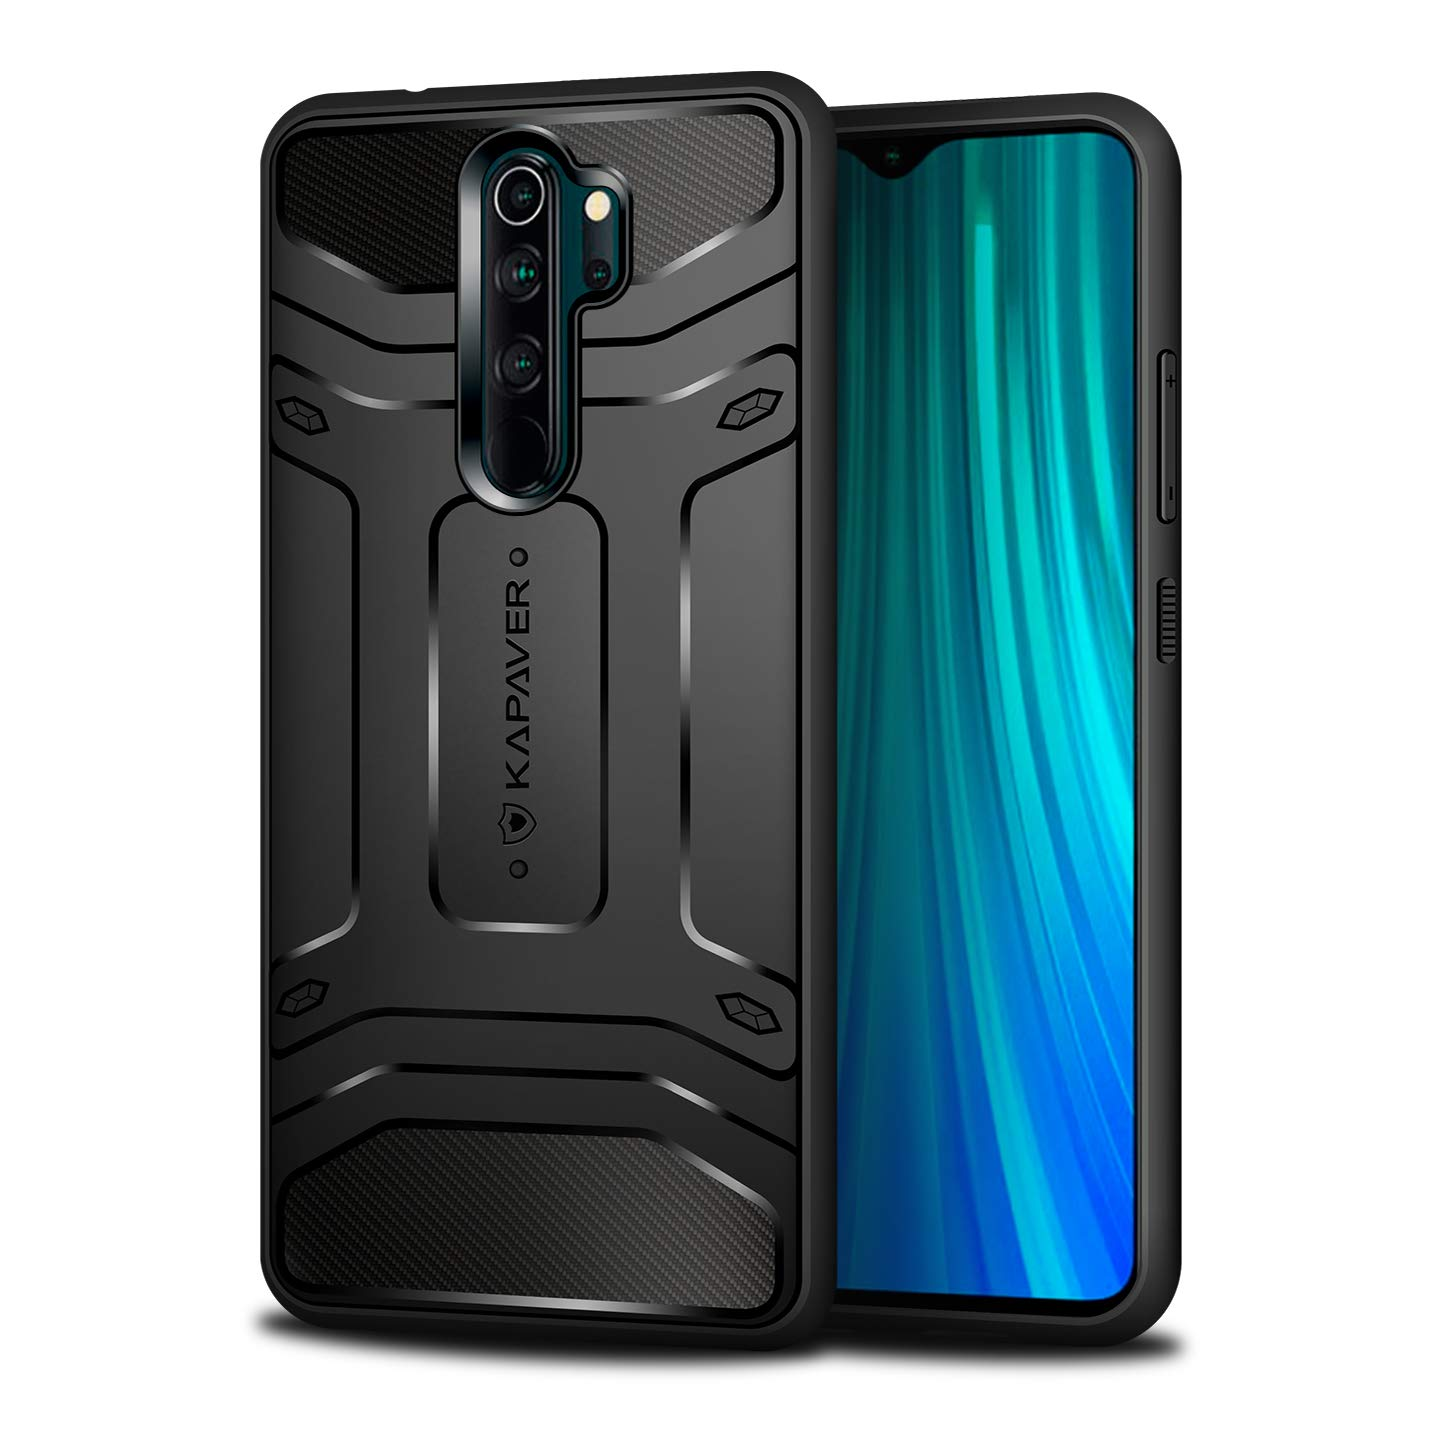 Kapaver Rugged Back Cover Case For Xiaomi Redmi Note 8 Amazon In Electronics